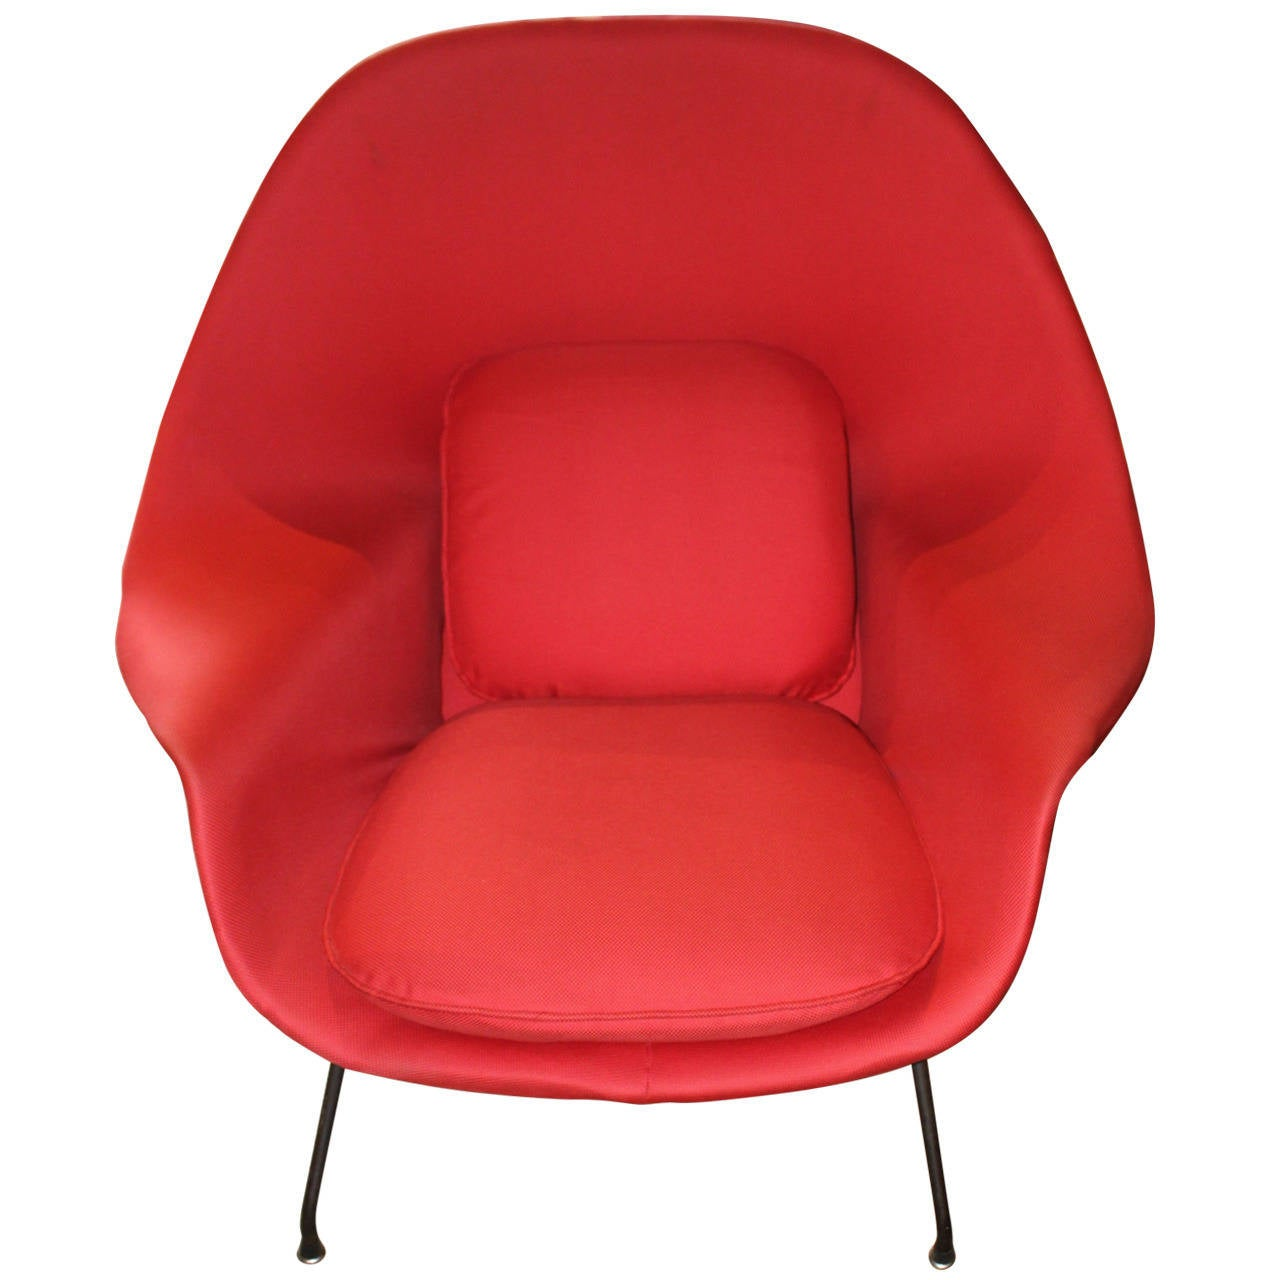 1950s saarinen womb chair for sale at 1stdibs - Vintage womb chair for sale ...